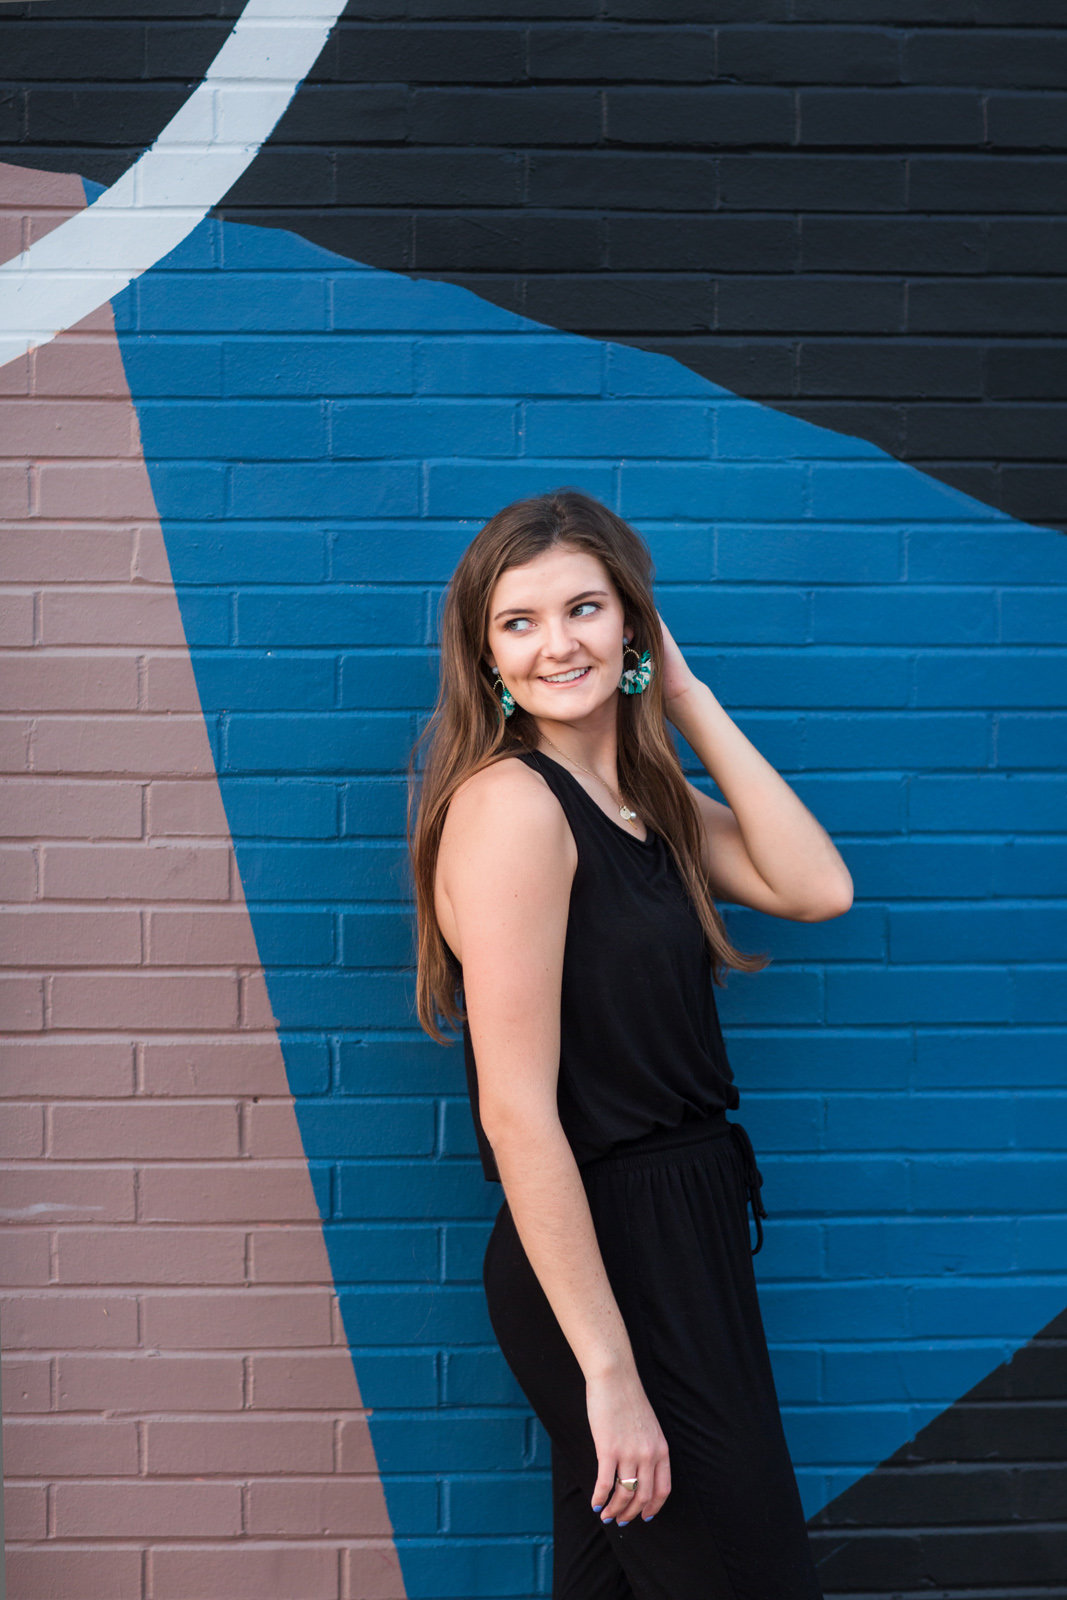 L Photographie high school senior photos midtown St. Louis 64